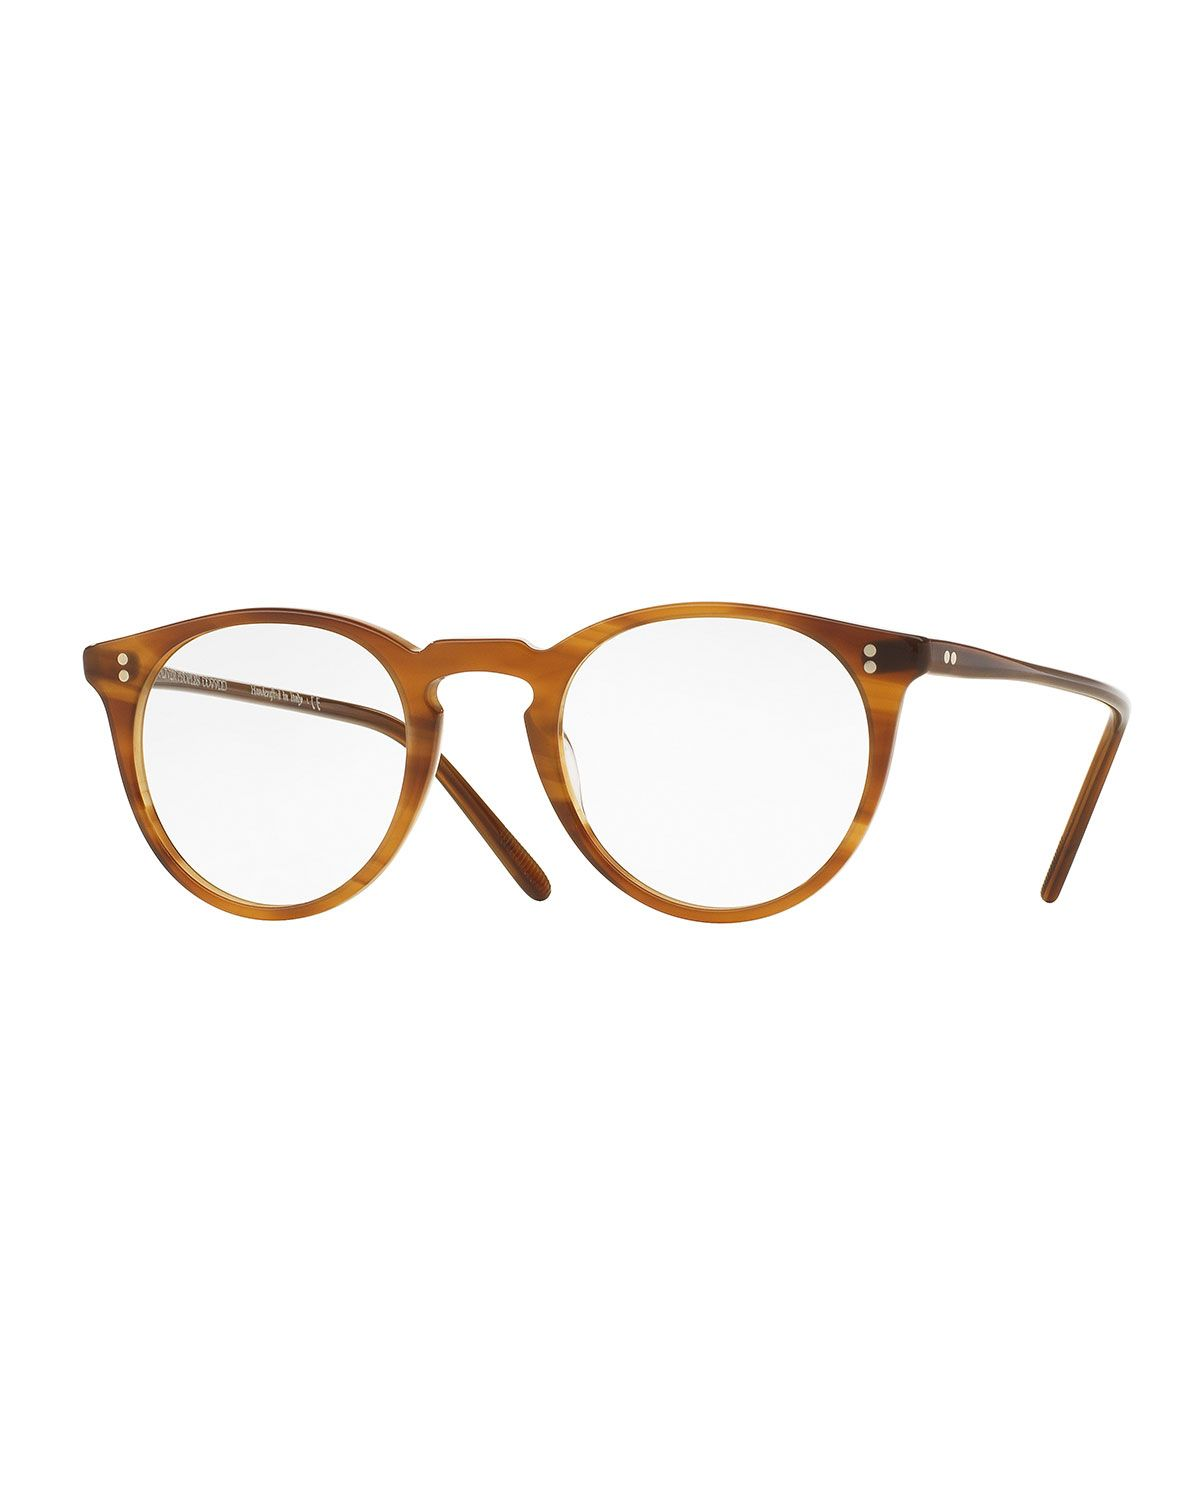 O\'Malley Round Optical Frames, Brown - Oliver Peoples | *Vision Care ...